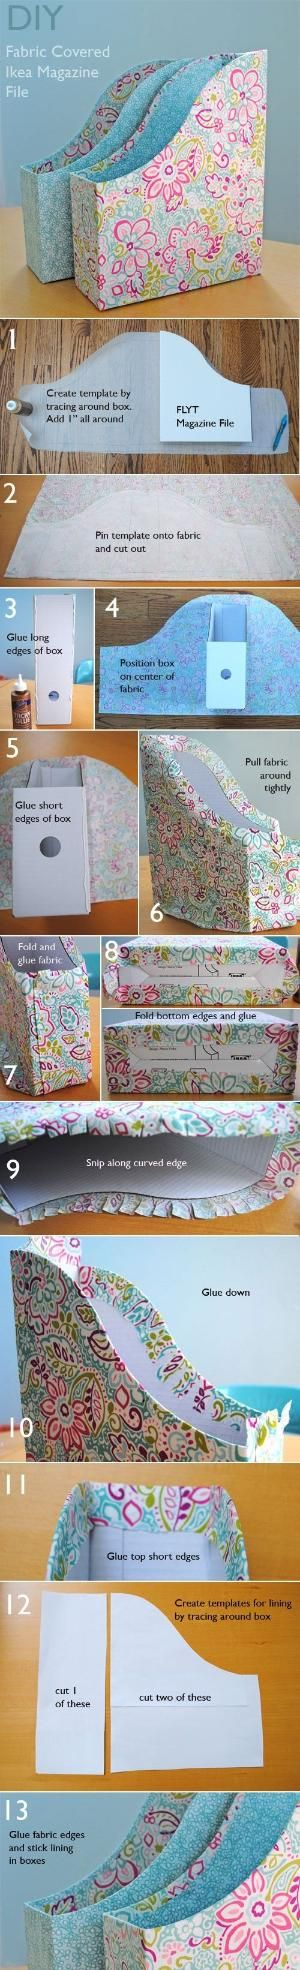 fabric covered ikea magazine files tutorial by cathleen